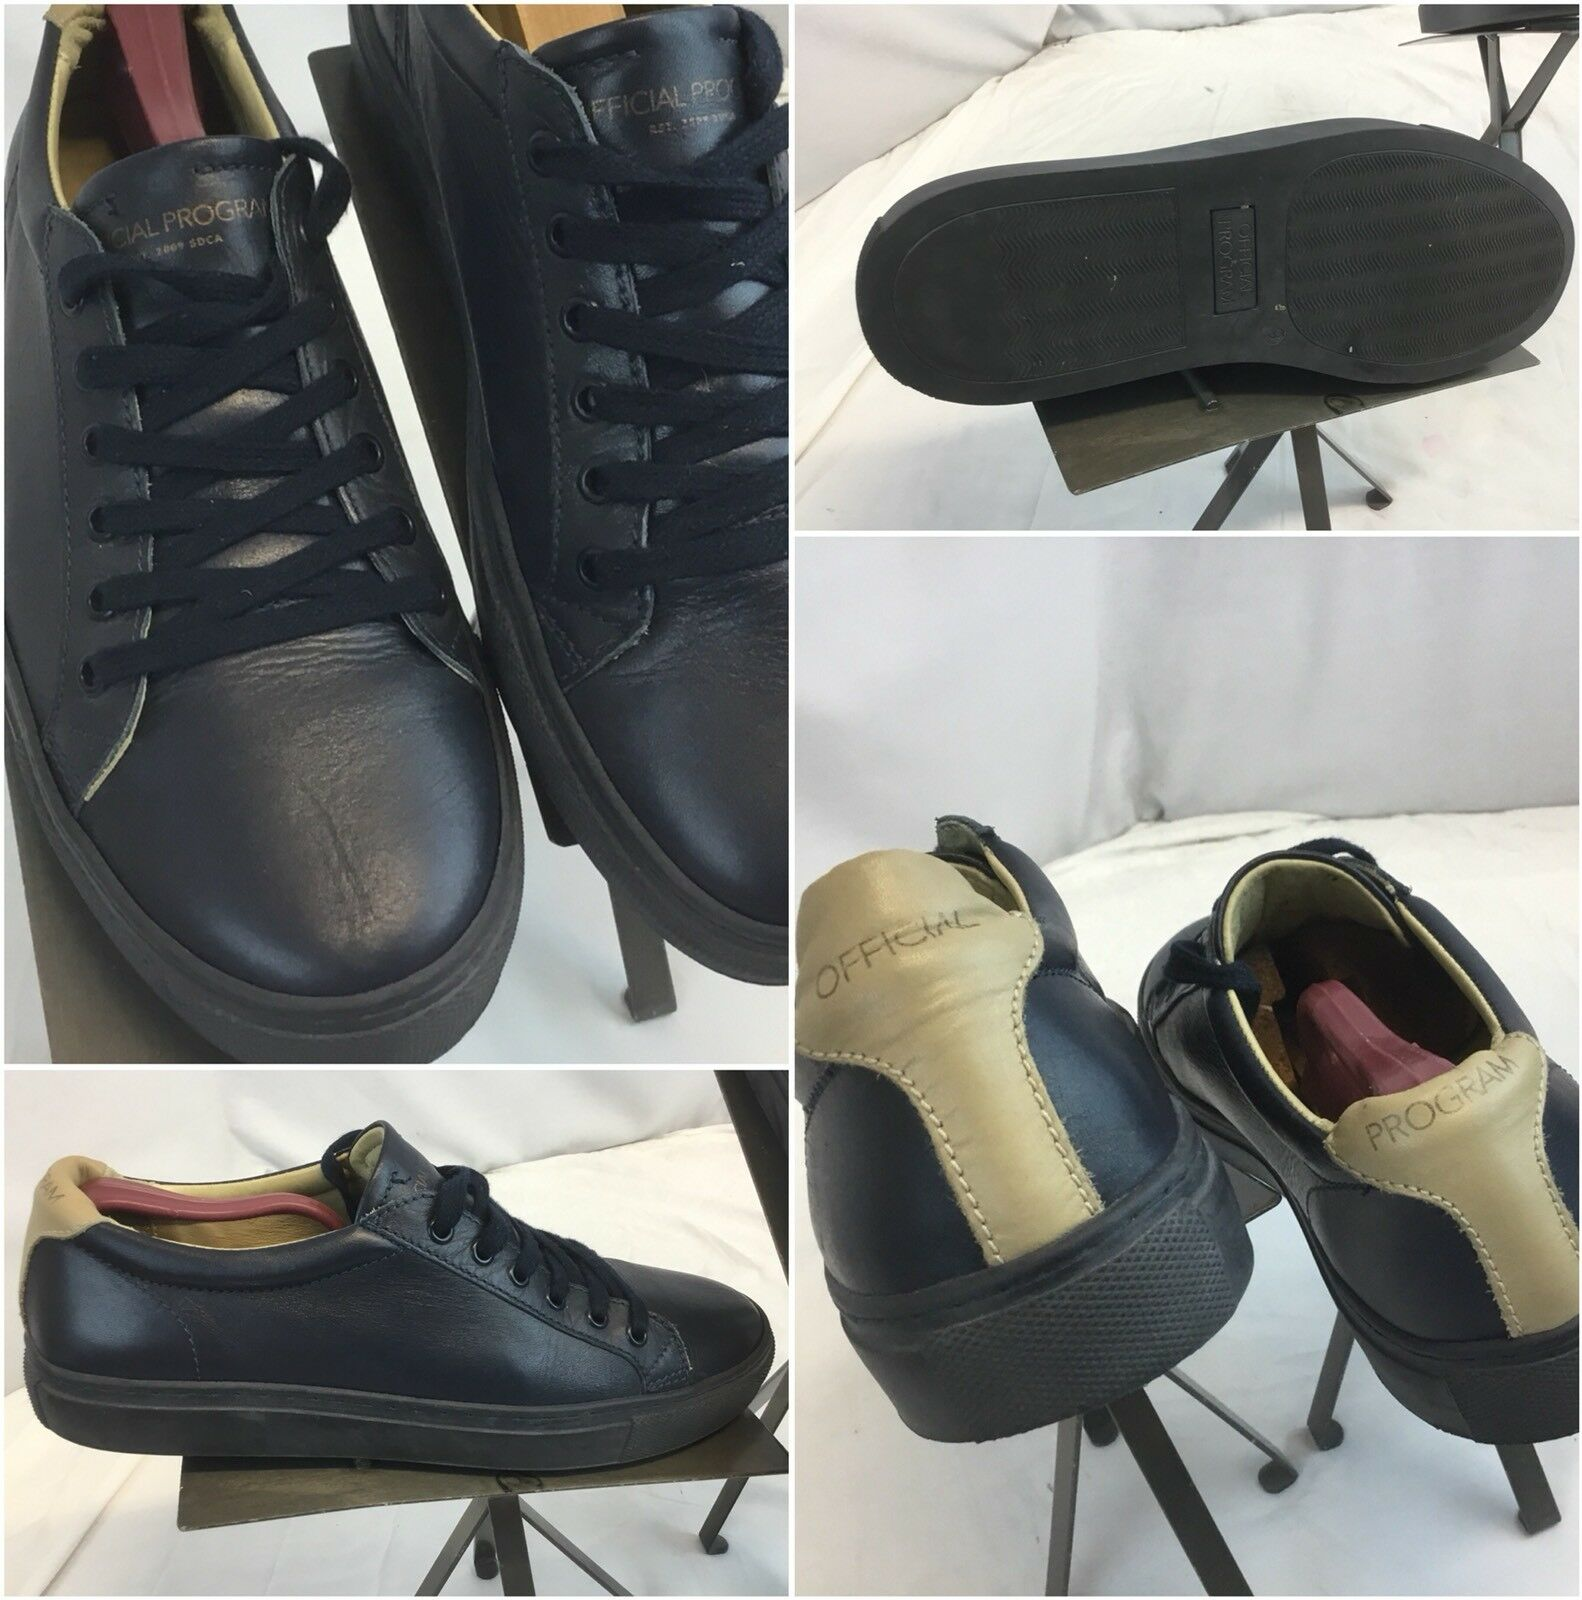 Official Program Sneakers shoes Sz 9 Blac Leather Tan Portugal Worn 2x YGI H8S-4